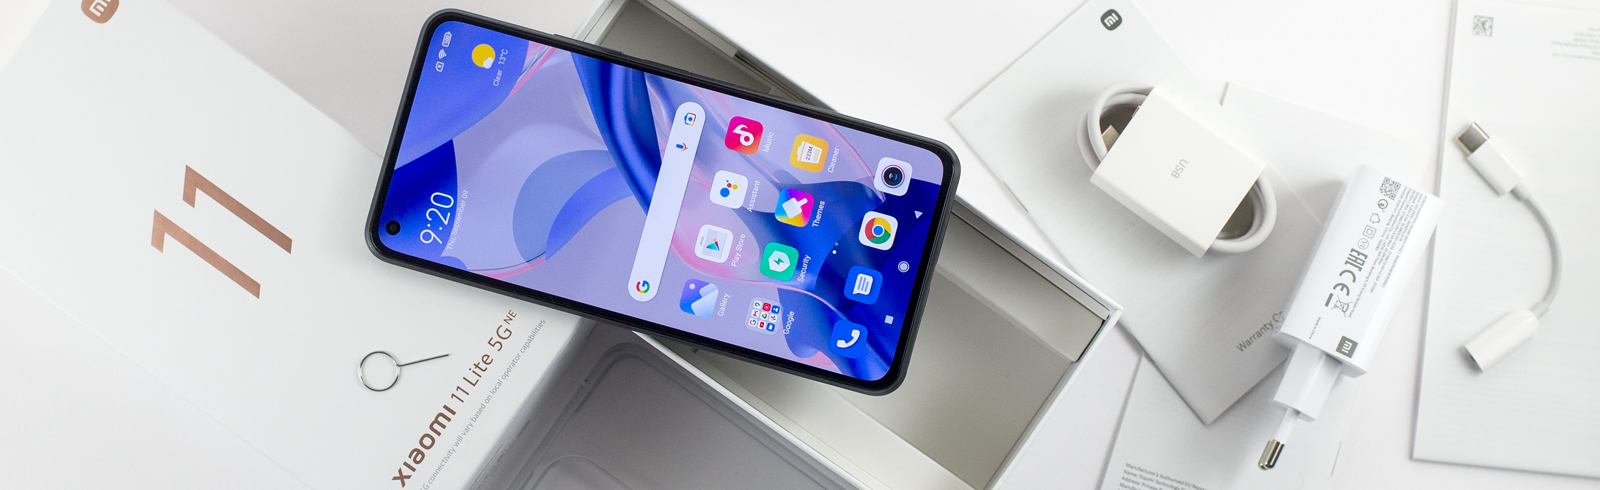 Our in-depth Xiaomi 11 Lite 5G NE review is ready